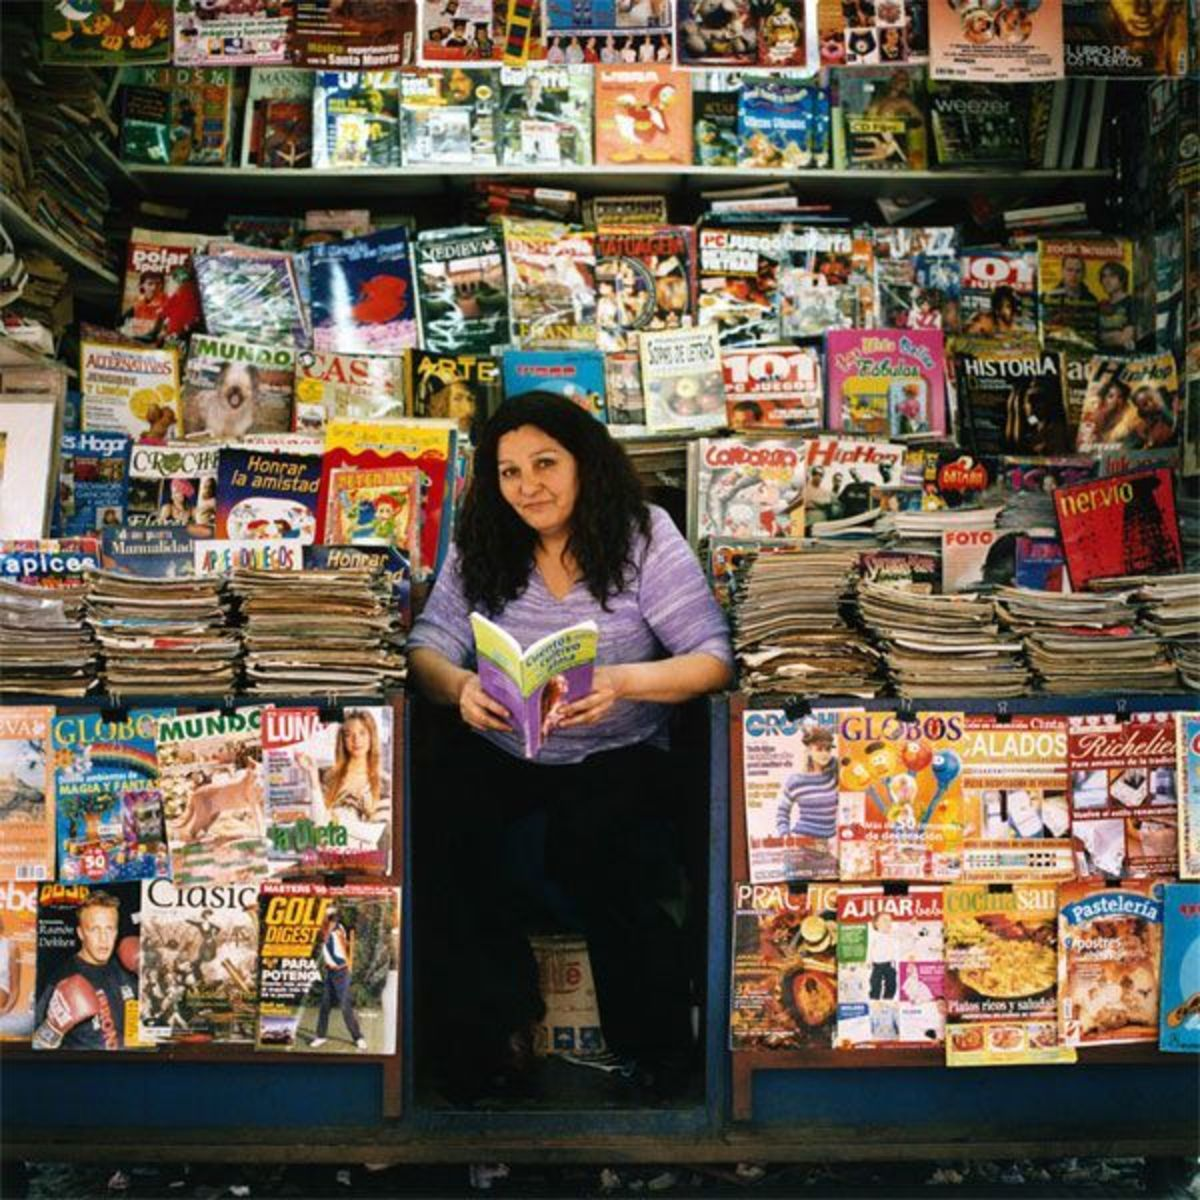 Magazine Stand, Matacuna Street, Central Station, Santiago, Chile